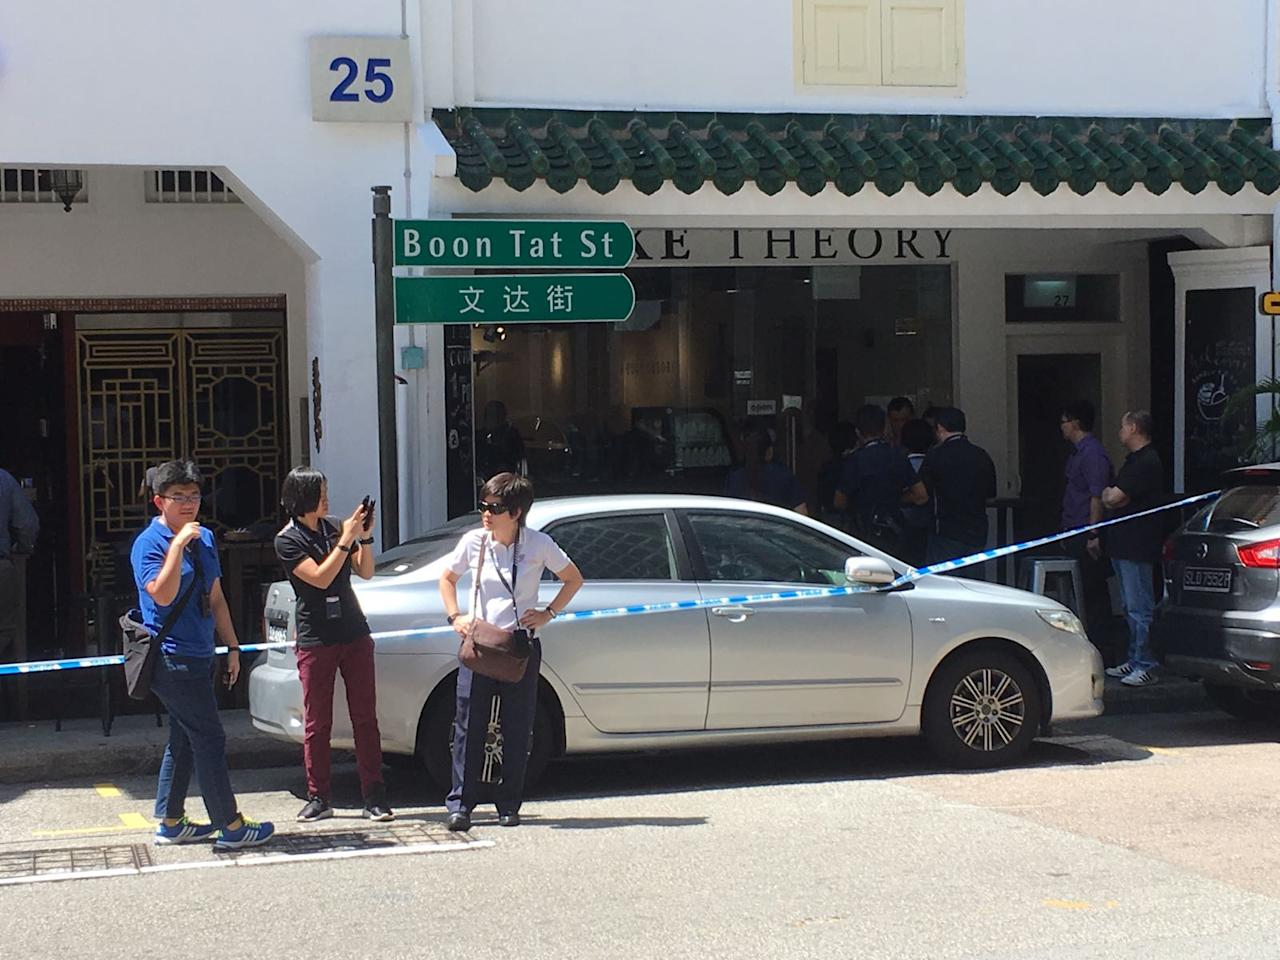 <p>Stabbing incident at Boon Tat street. Photo: Gabriel Choo/Yahoo Singapore </p>